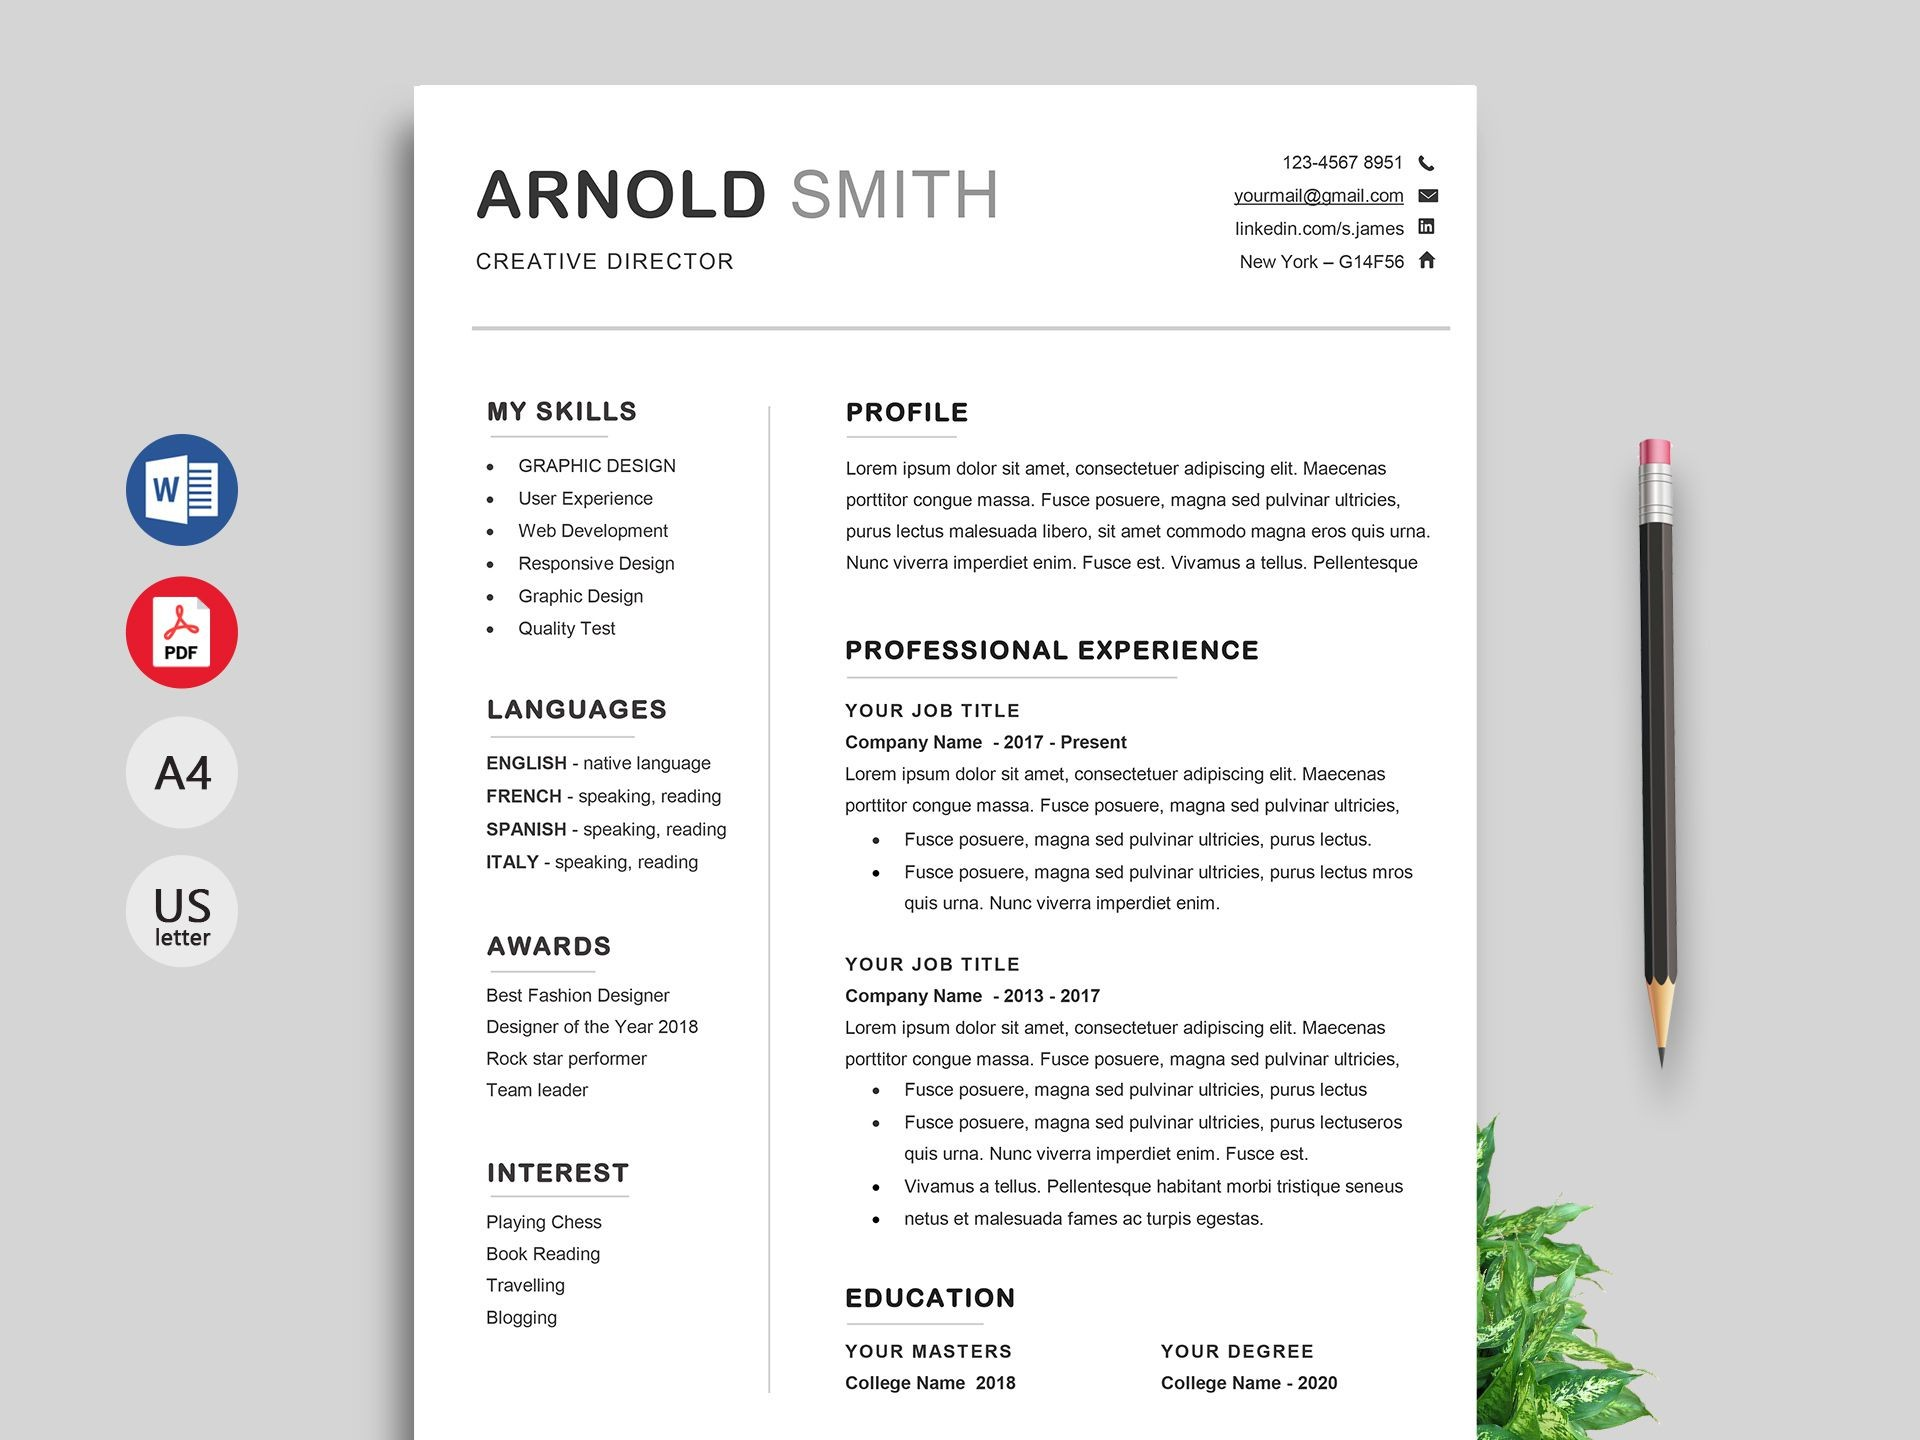 001 Fascinating Downloadable Resume Template Word Highest Clarity  Free Download Philippine 20181920